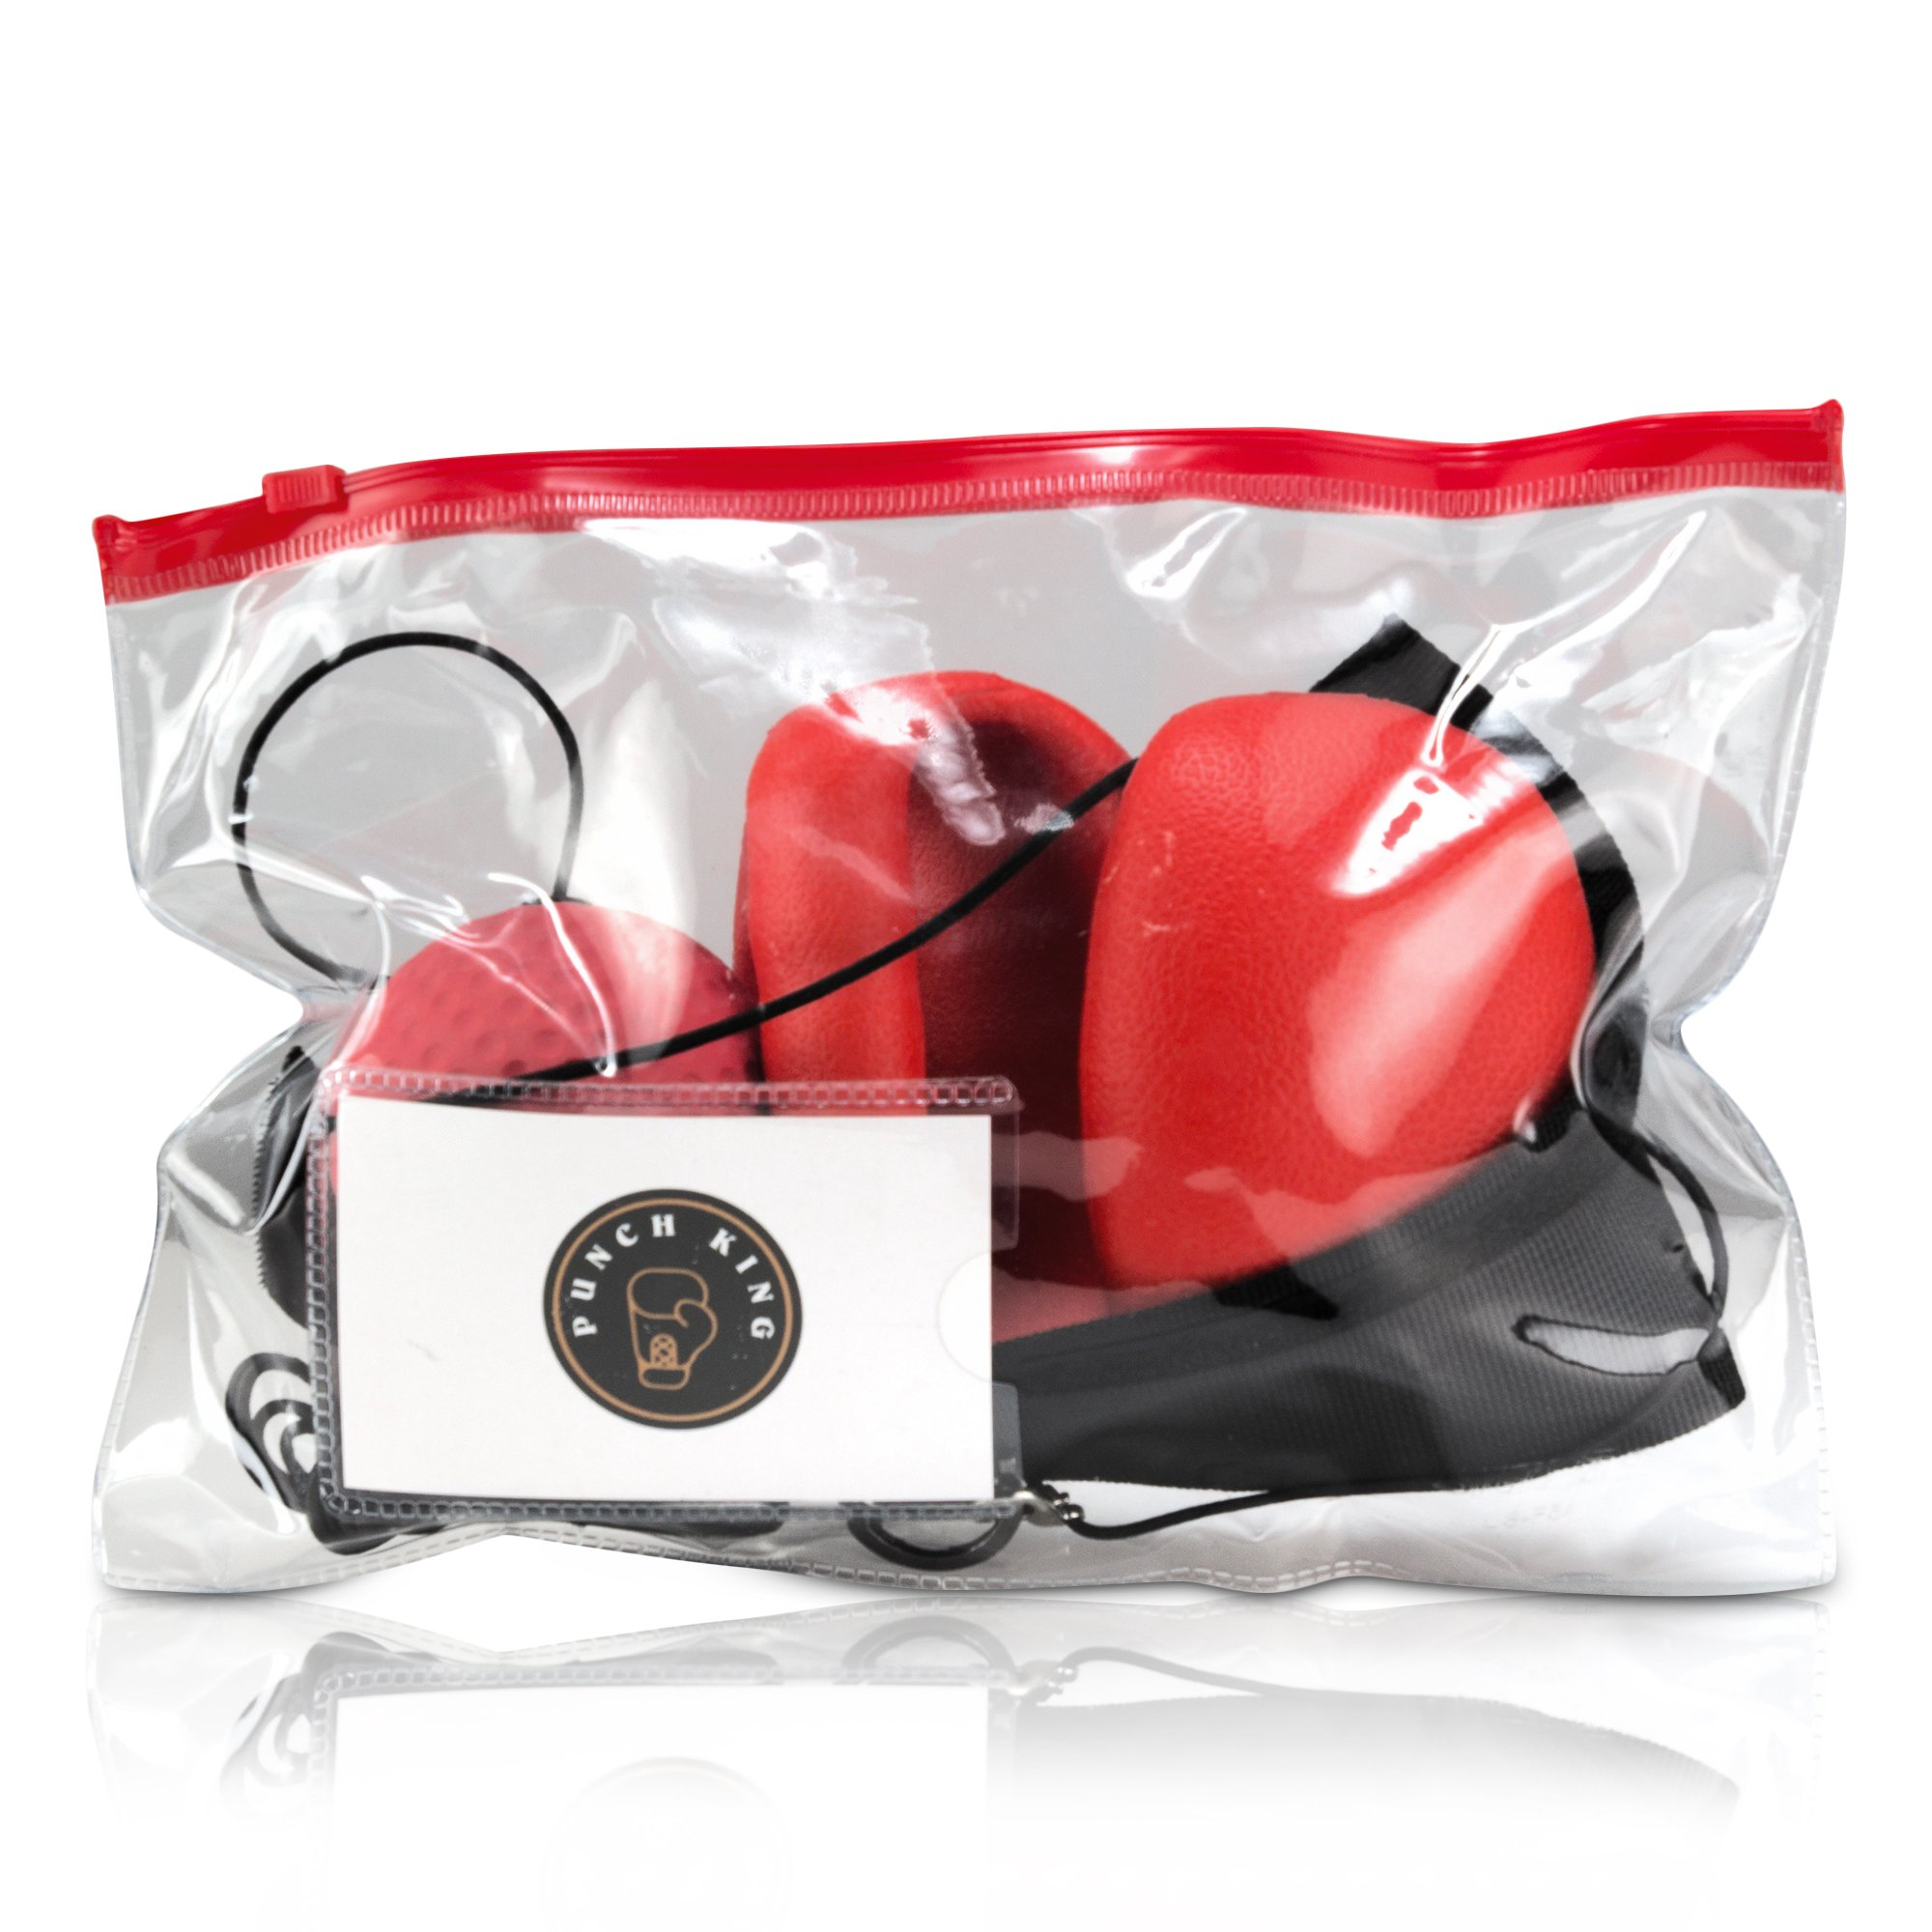 Boxing Reflex Ball - Boxing Equipment, Adjustable Head Band, Gloves, Extra String, Instruction and Repair Guide Included - Perfect For Reflex/Speed Training Improve Reactions for Kids Aswell by Punch King (Image #2)